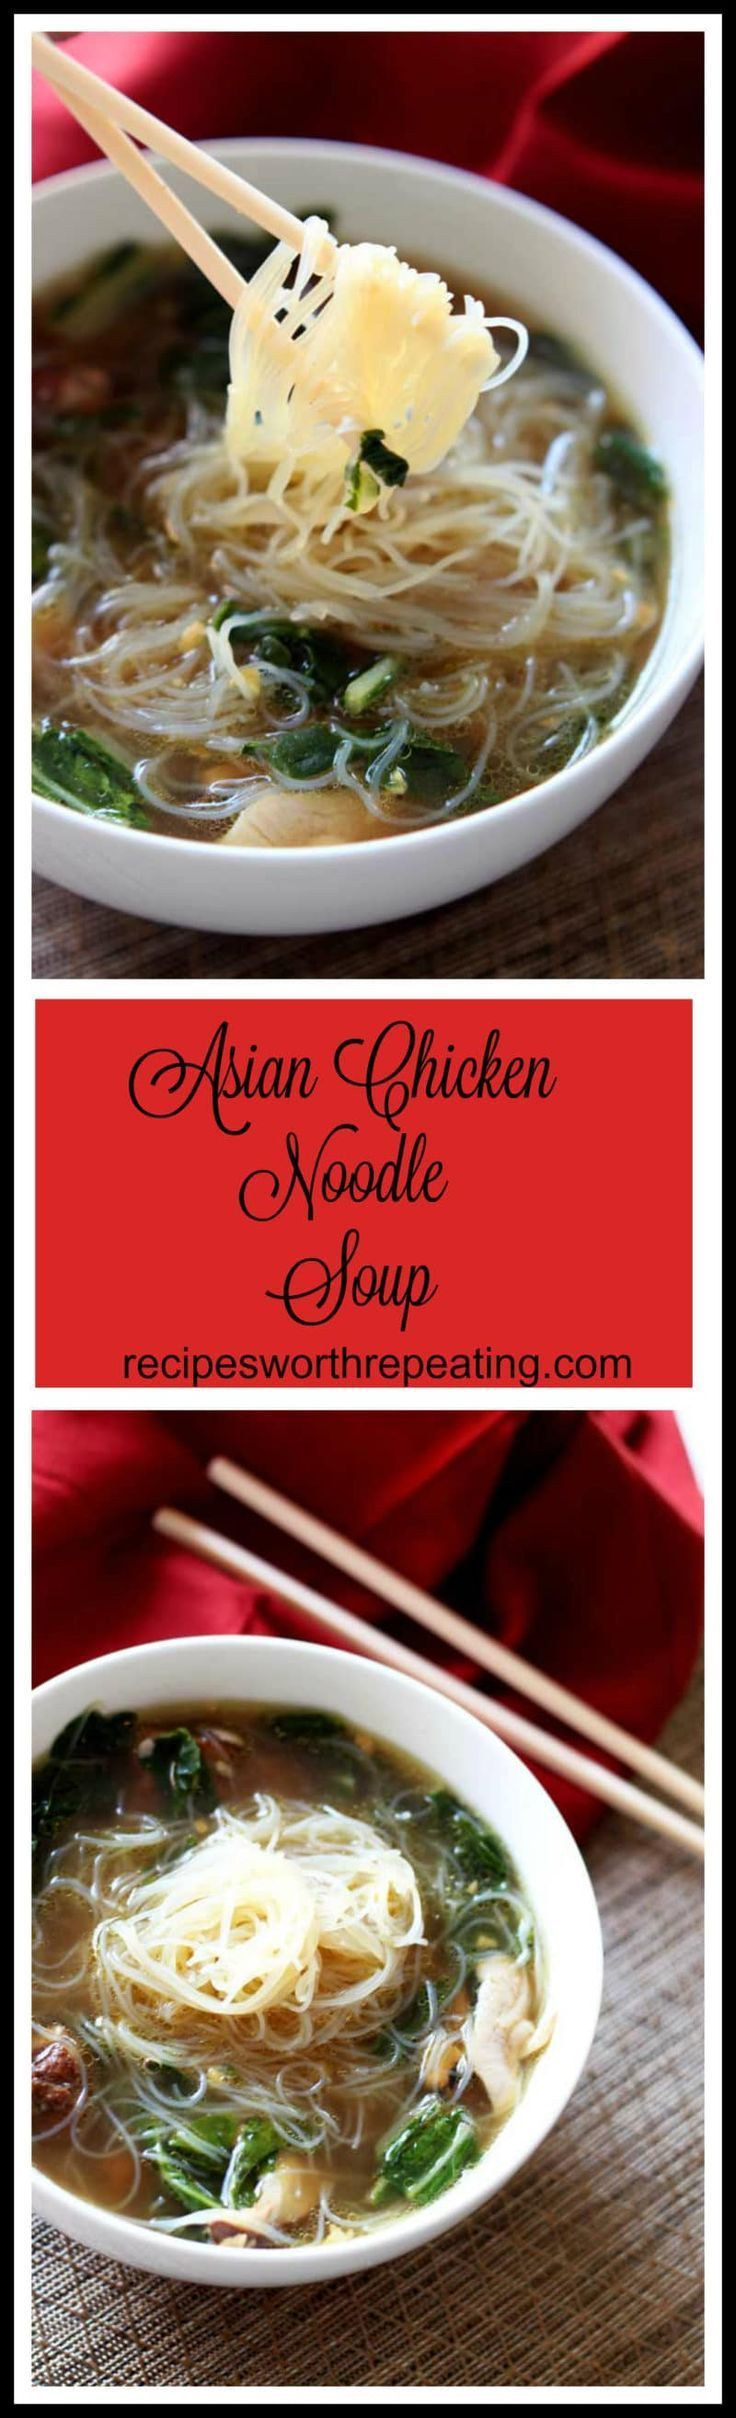 Asian Chicken Noodle Soup | Recipes Worth Repeating | Soup | Gluten Free |